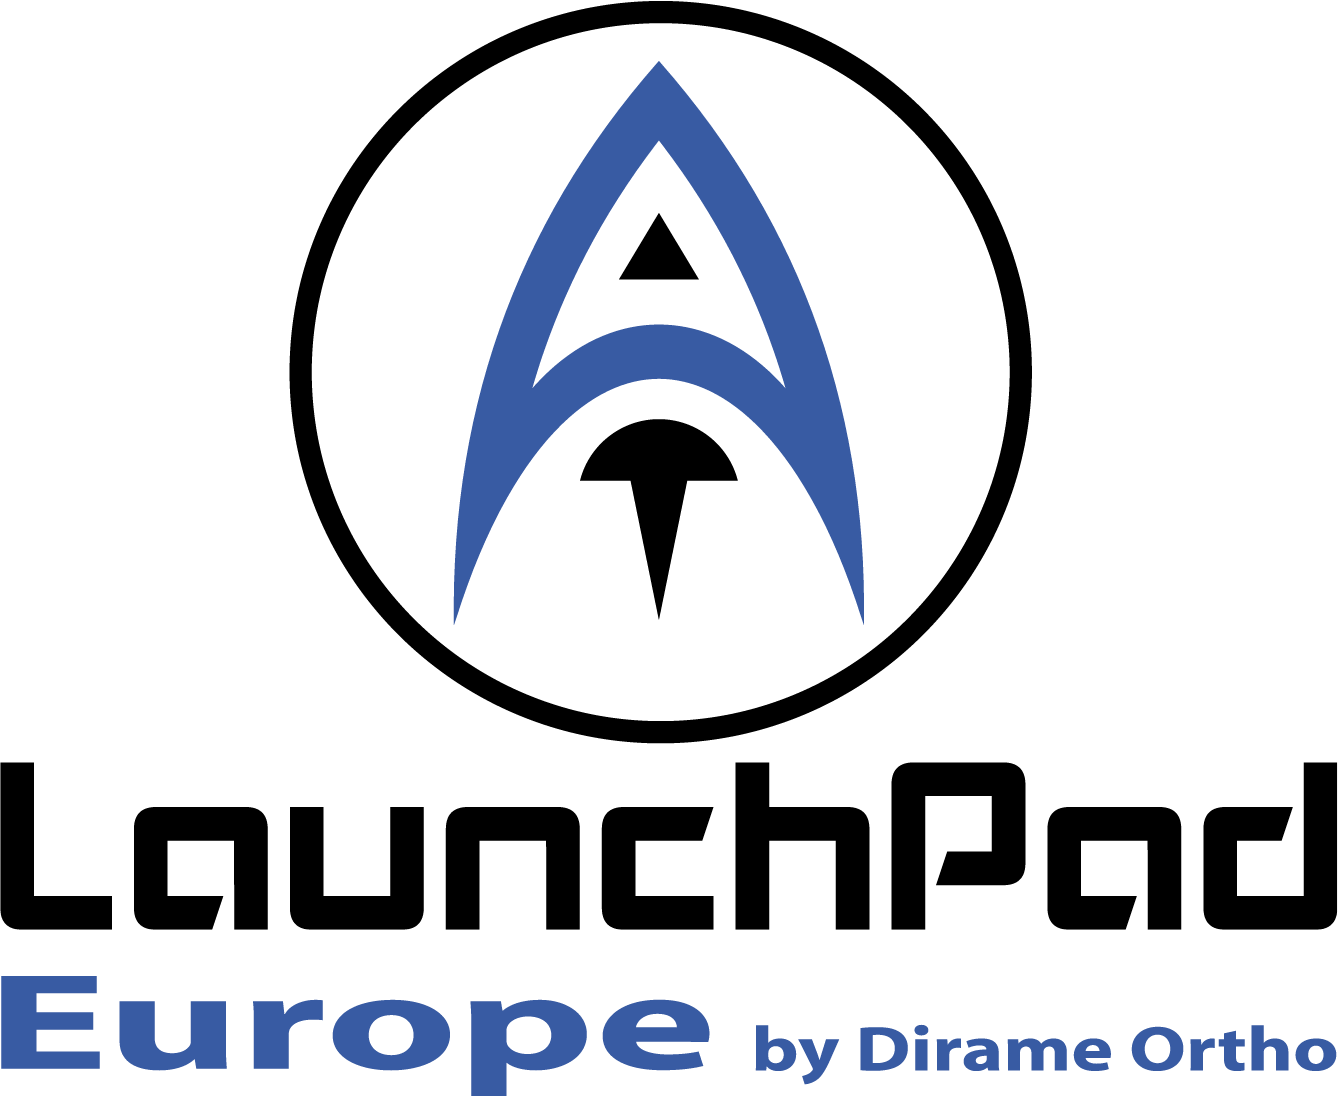 Launchpad europe by dirame kleur.png